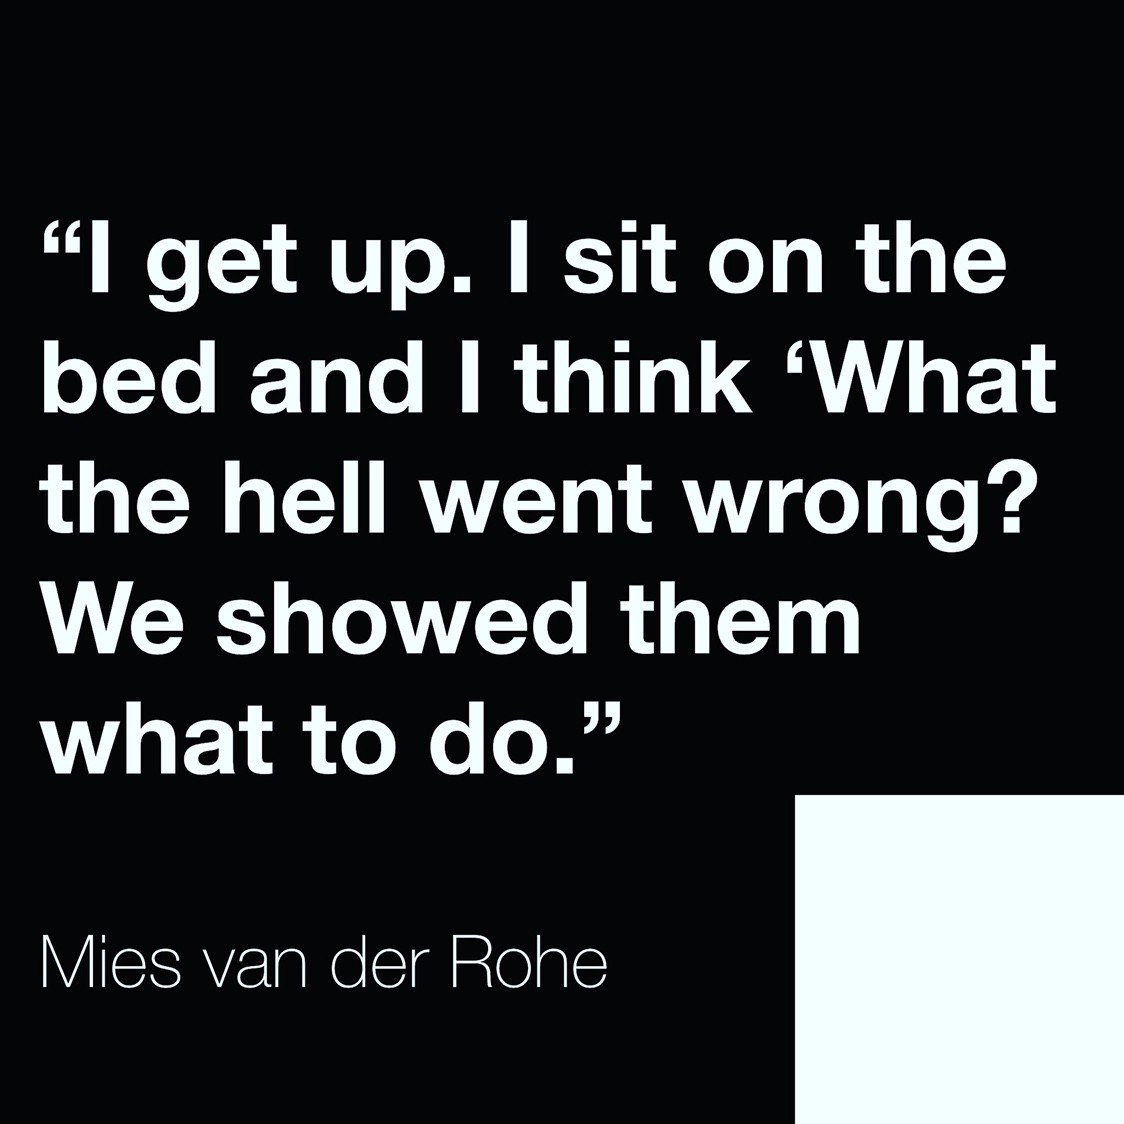 Quote - I get up. I sit on the bed and I think 'What the hell went wrong?' We showed them what to do.